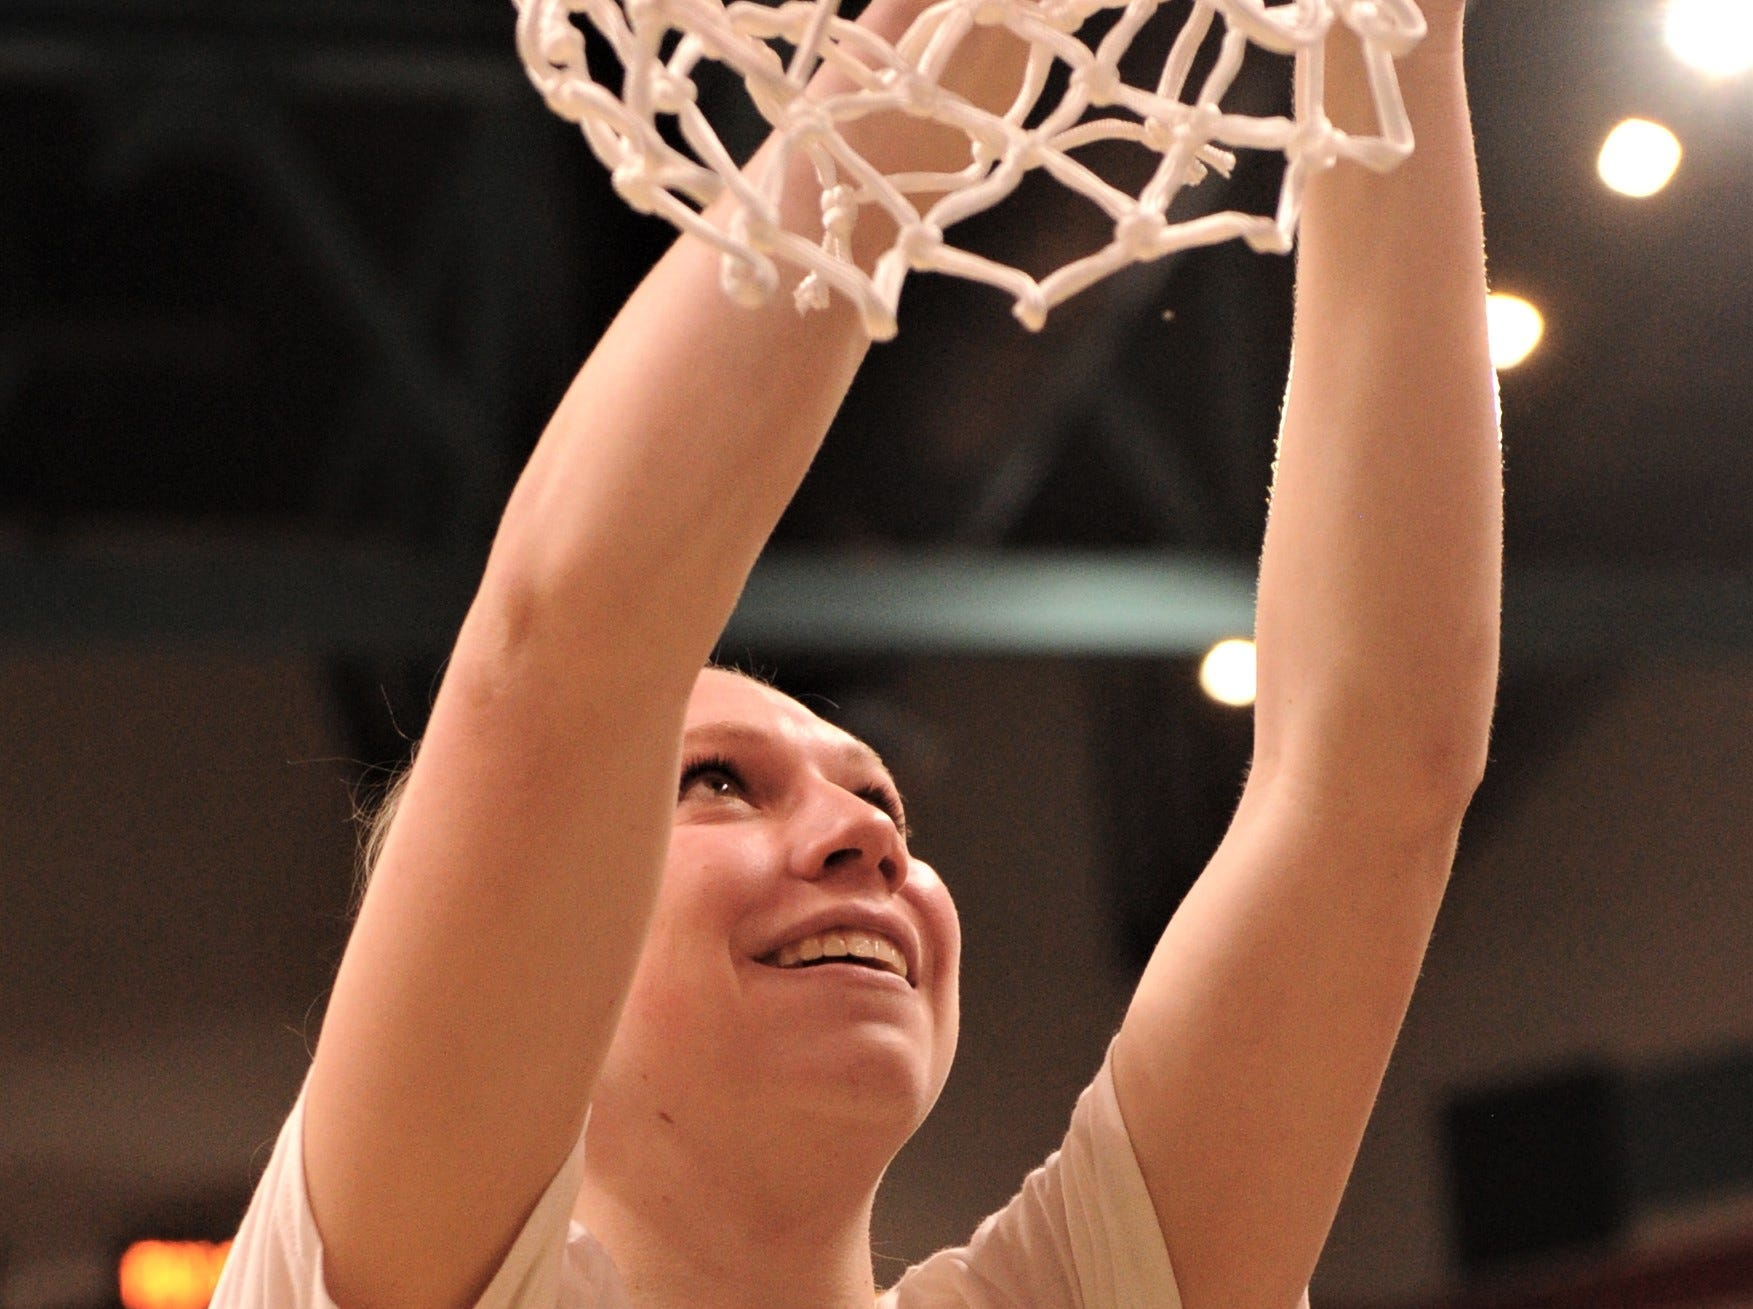 ACU junior Breanna Wright cuts a portion of the net after the Wildcats' beat Texas A&M-Corpus Christi 69-68 in the Southland Conference Tournament championship game Sunday, March 17, 2019, at the Merrell Center in Katy.